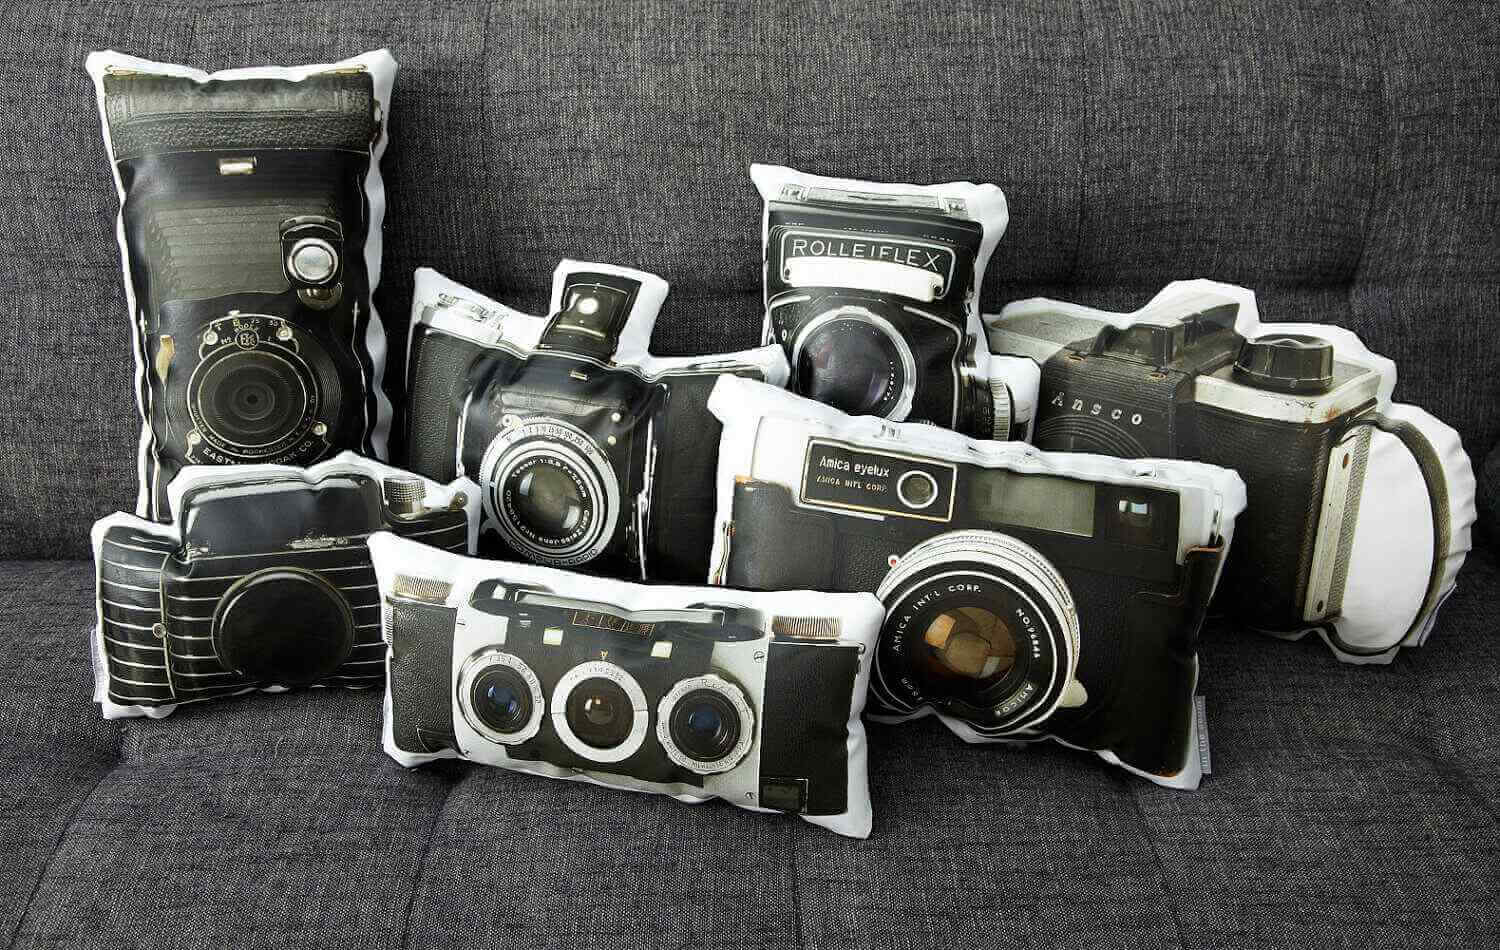 Vintage Amica Eyelux Camera Canvas Printed Pillow